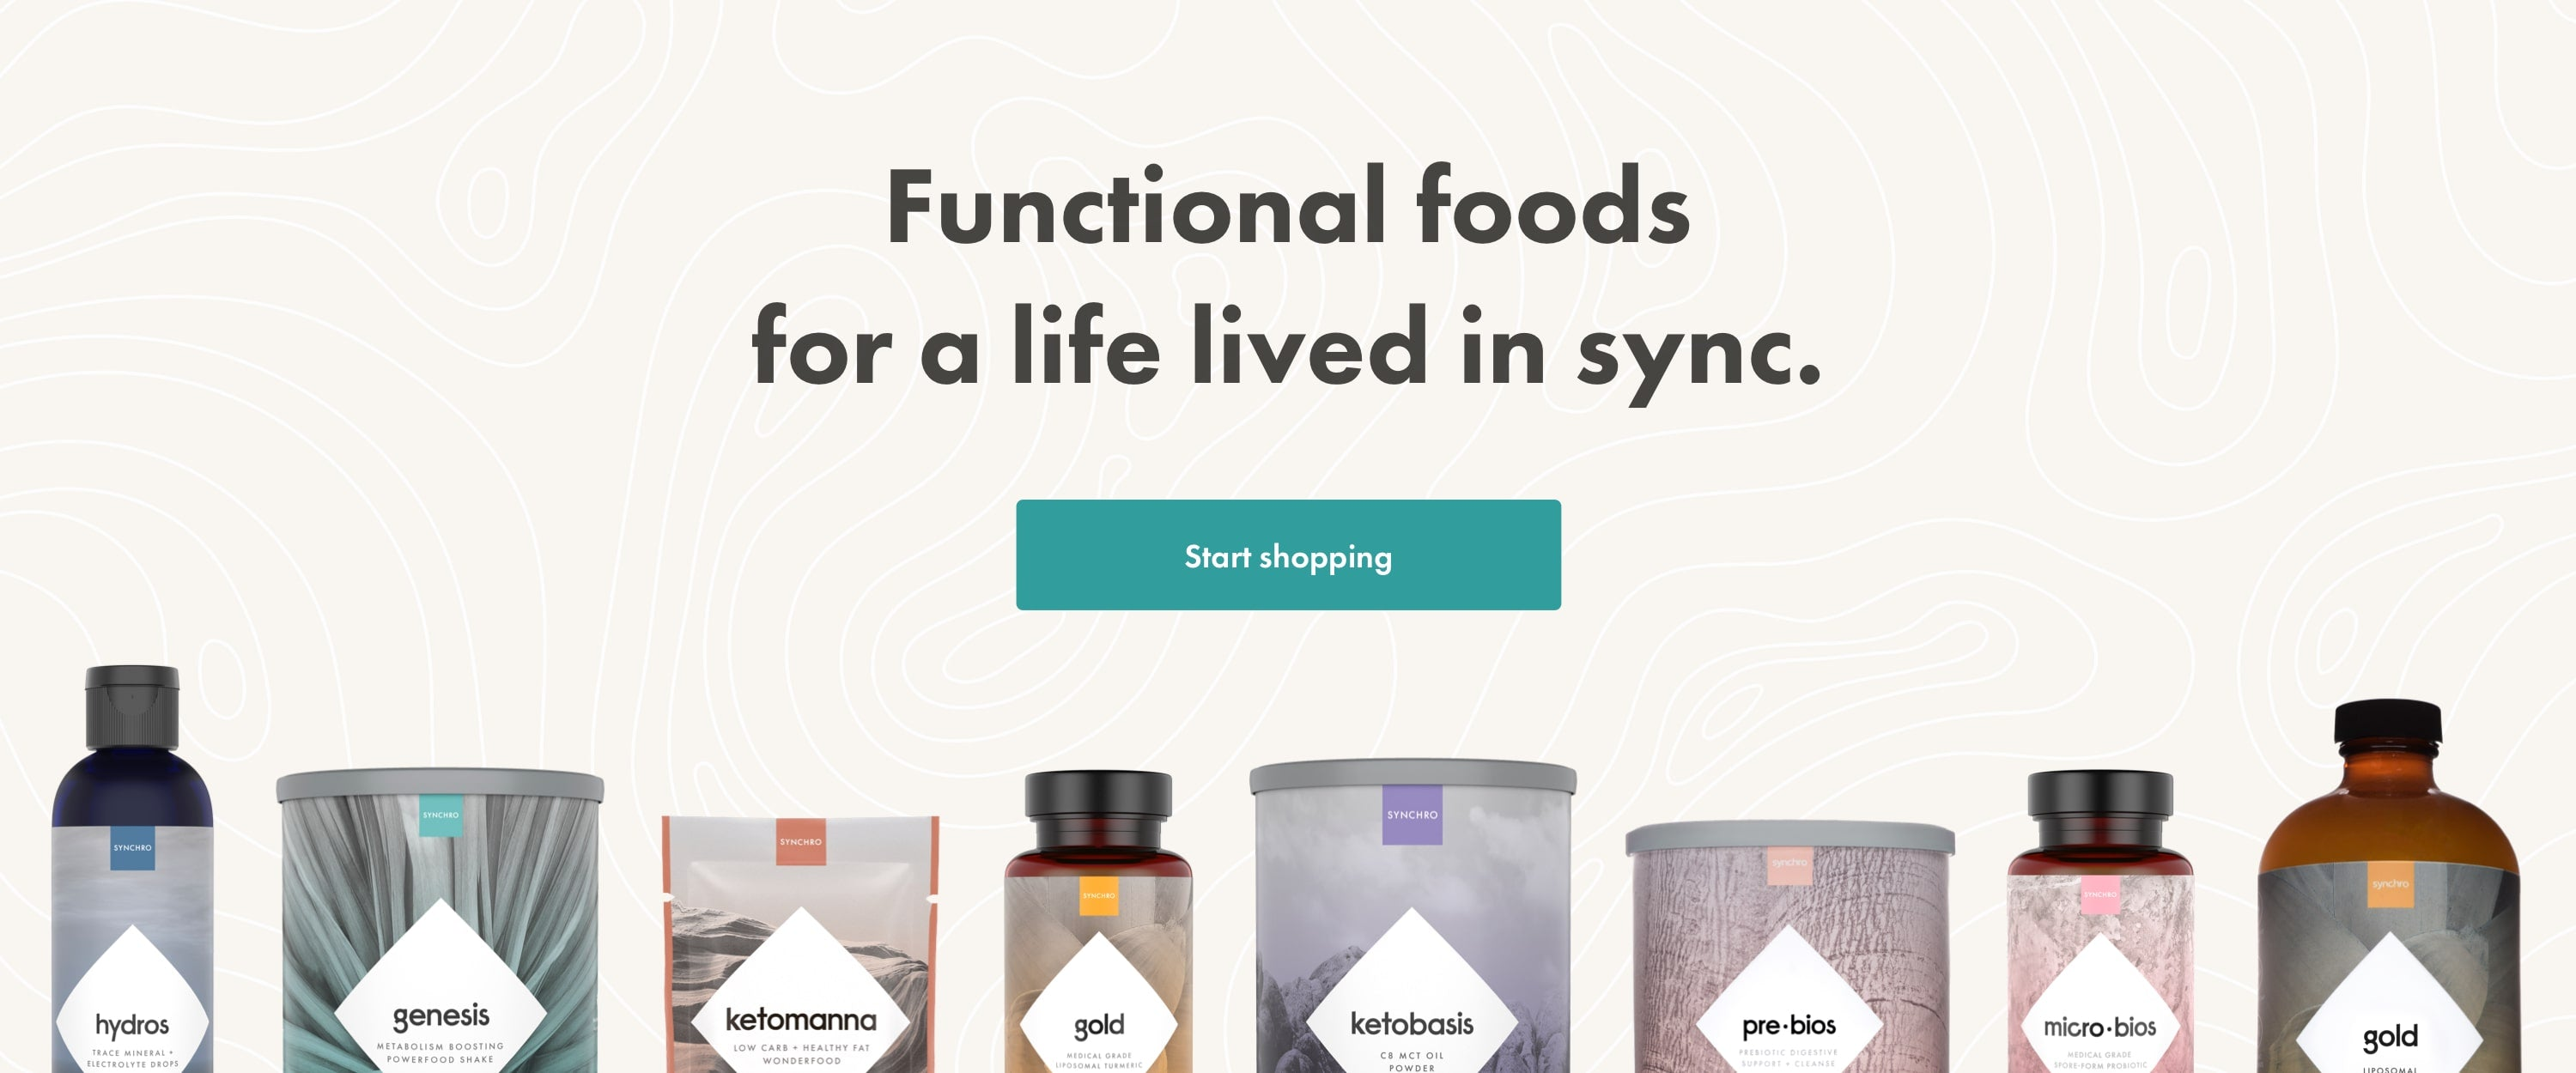 Functional foods for a life lived in sync.